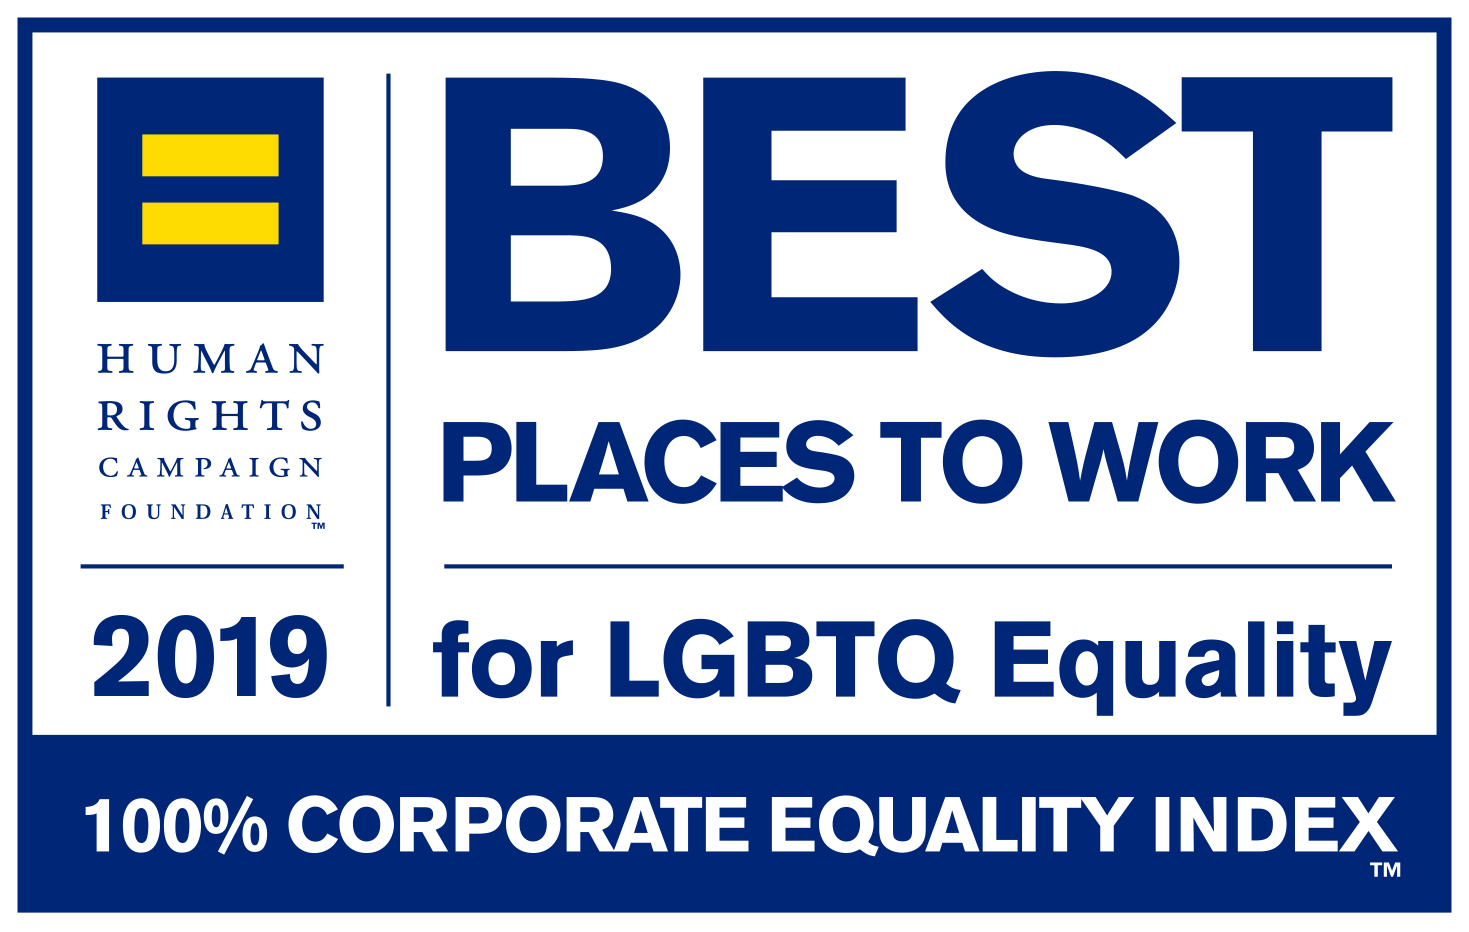 AEG is one of HRCF's 2019 Best Places to Work for LGBTQ Equality